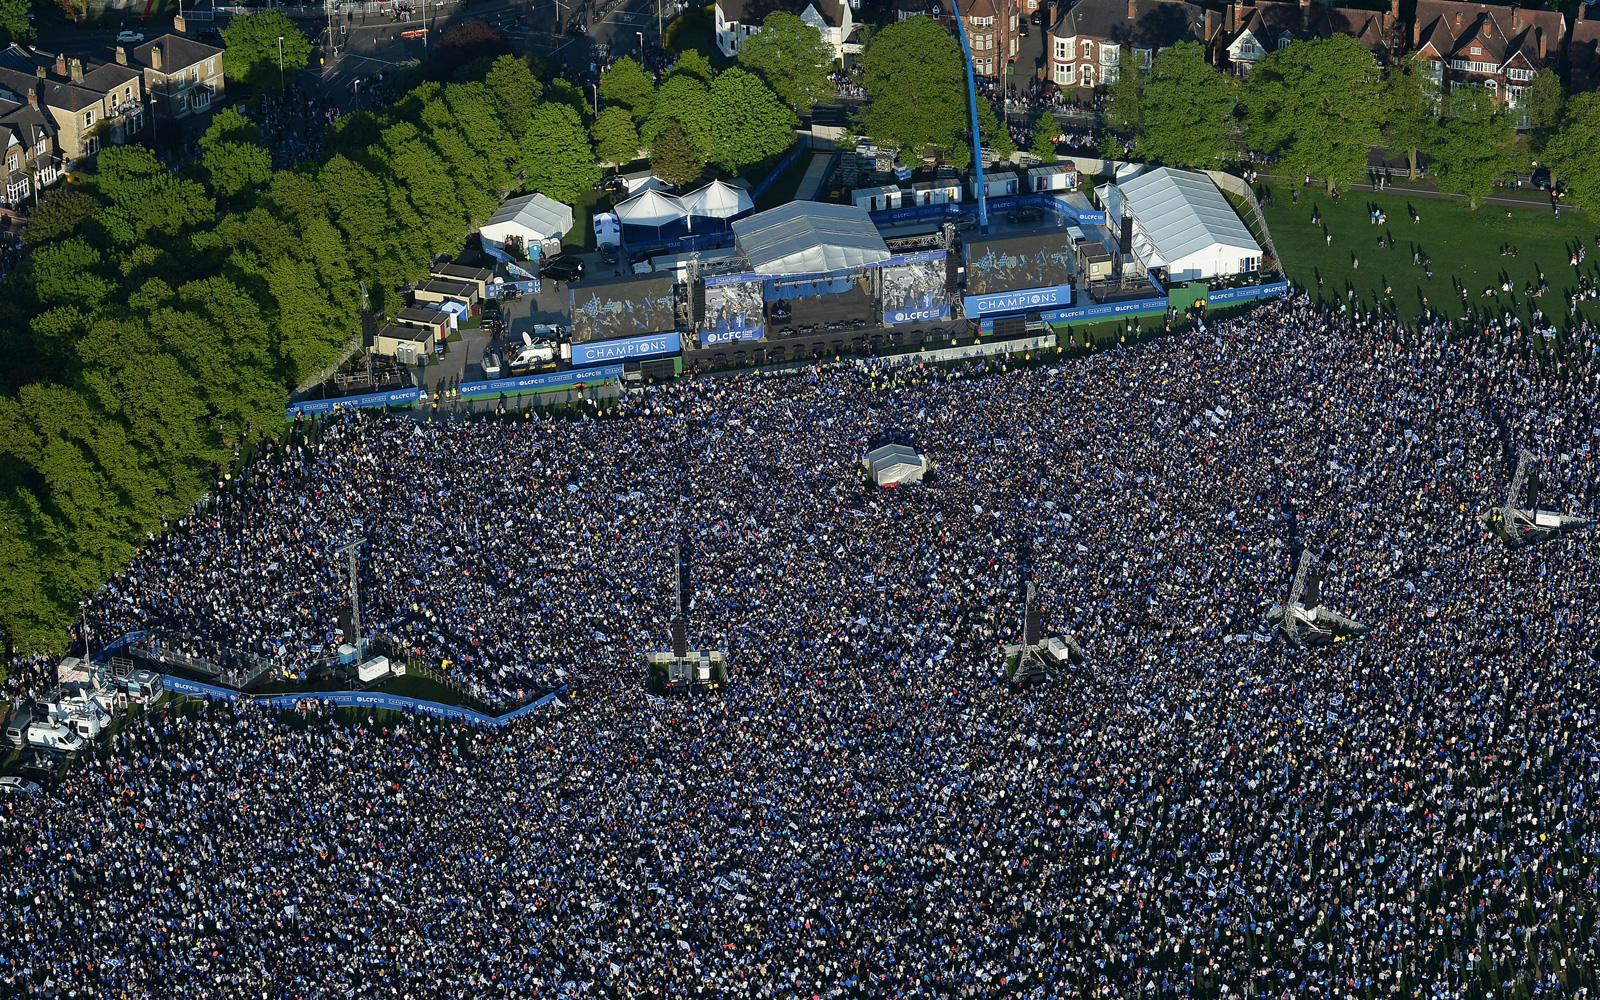 Thousands upon thousands pack Victoria Park in Leicester to celebrate Leicester City's Premier League title